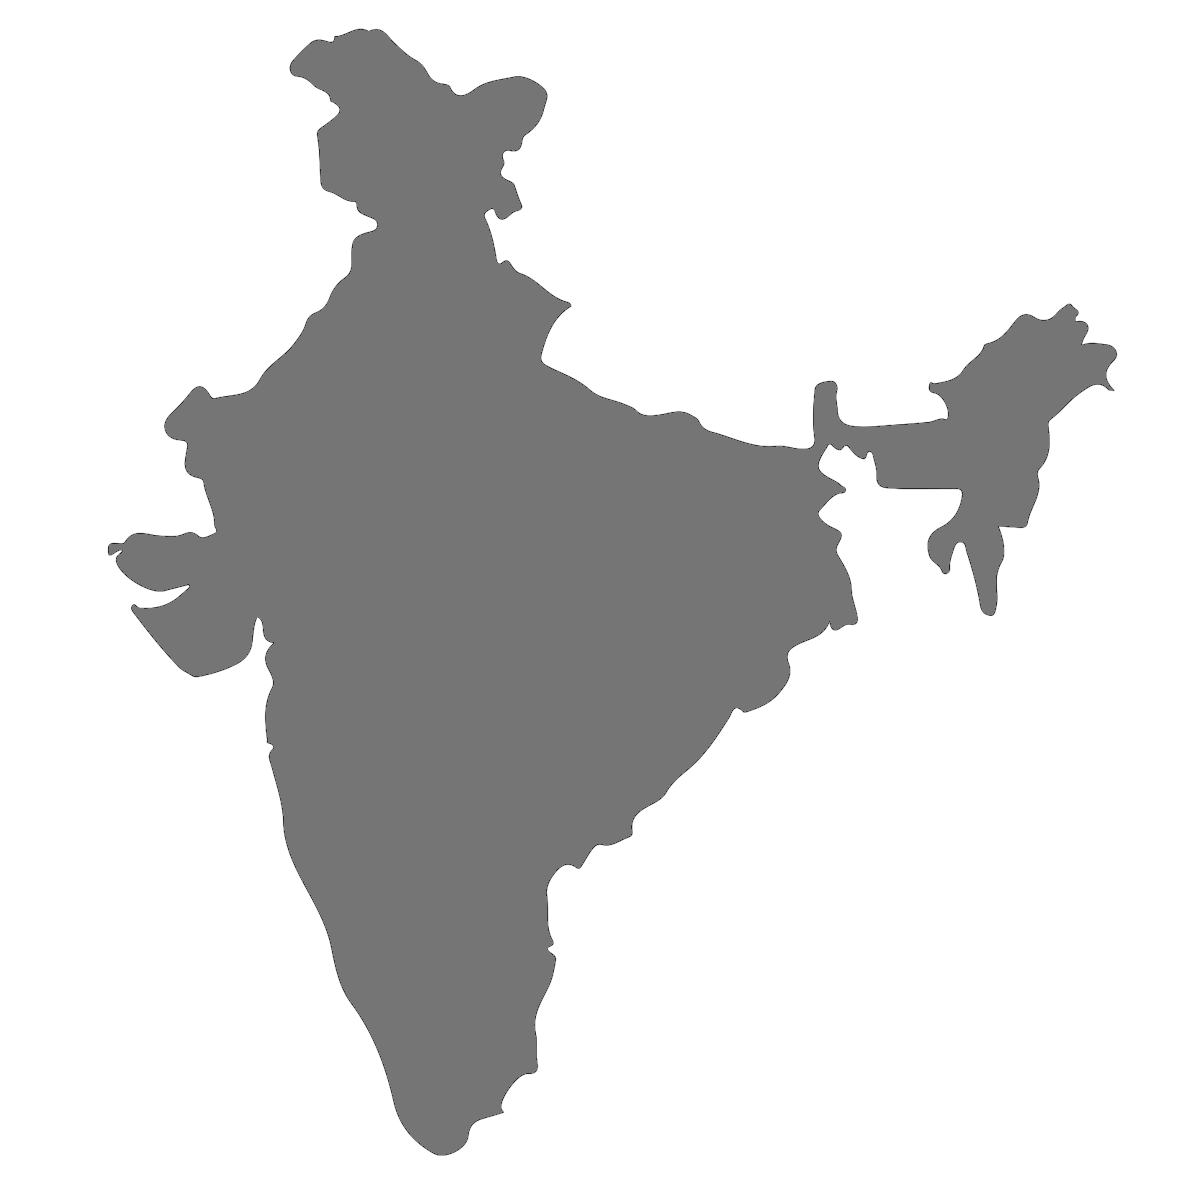 India PNG - 16893